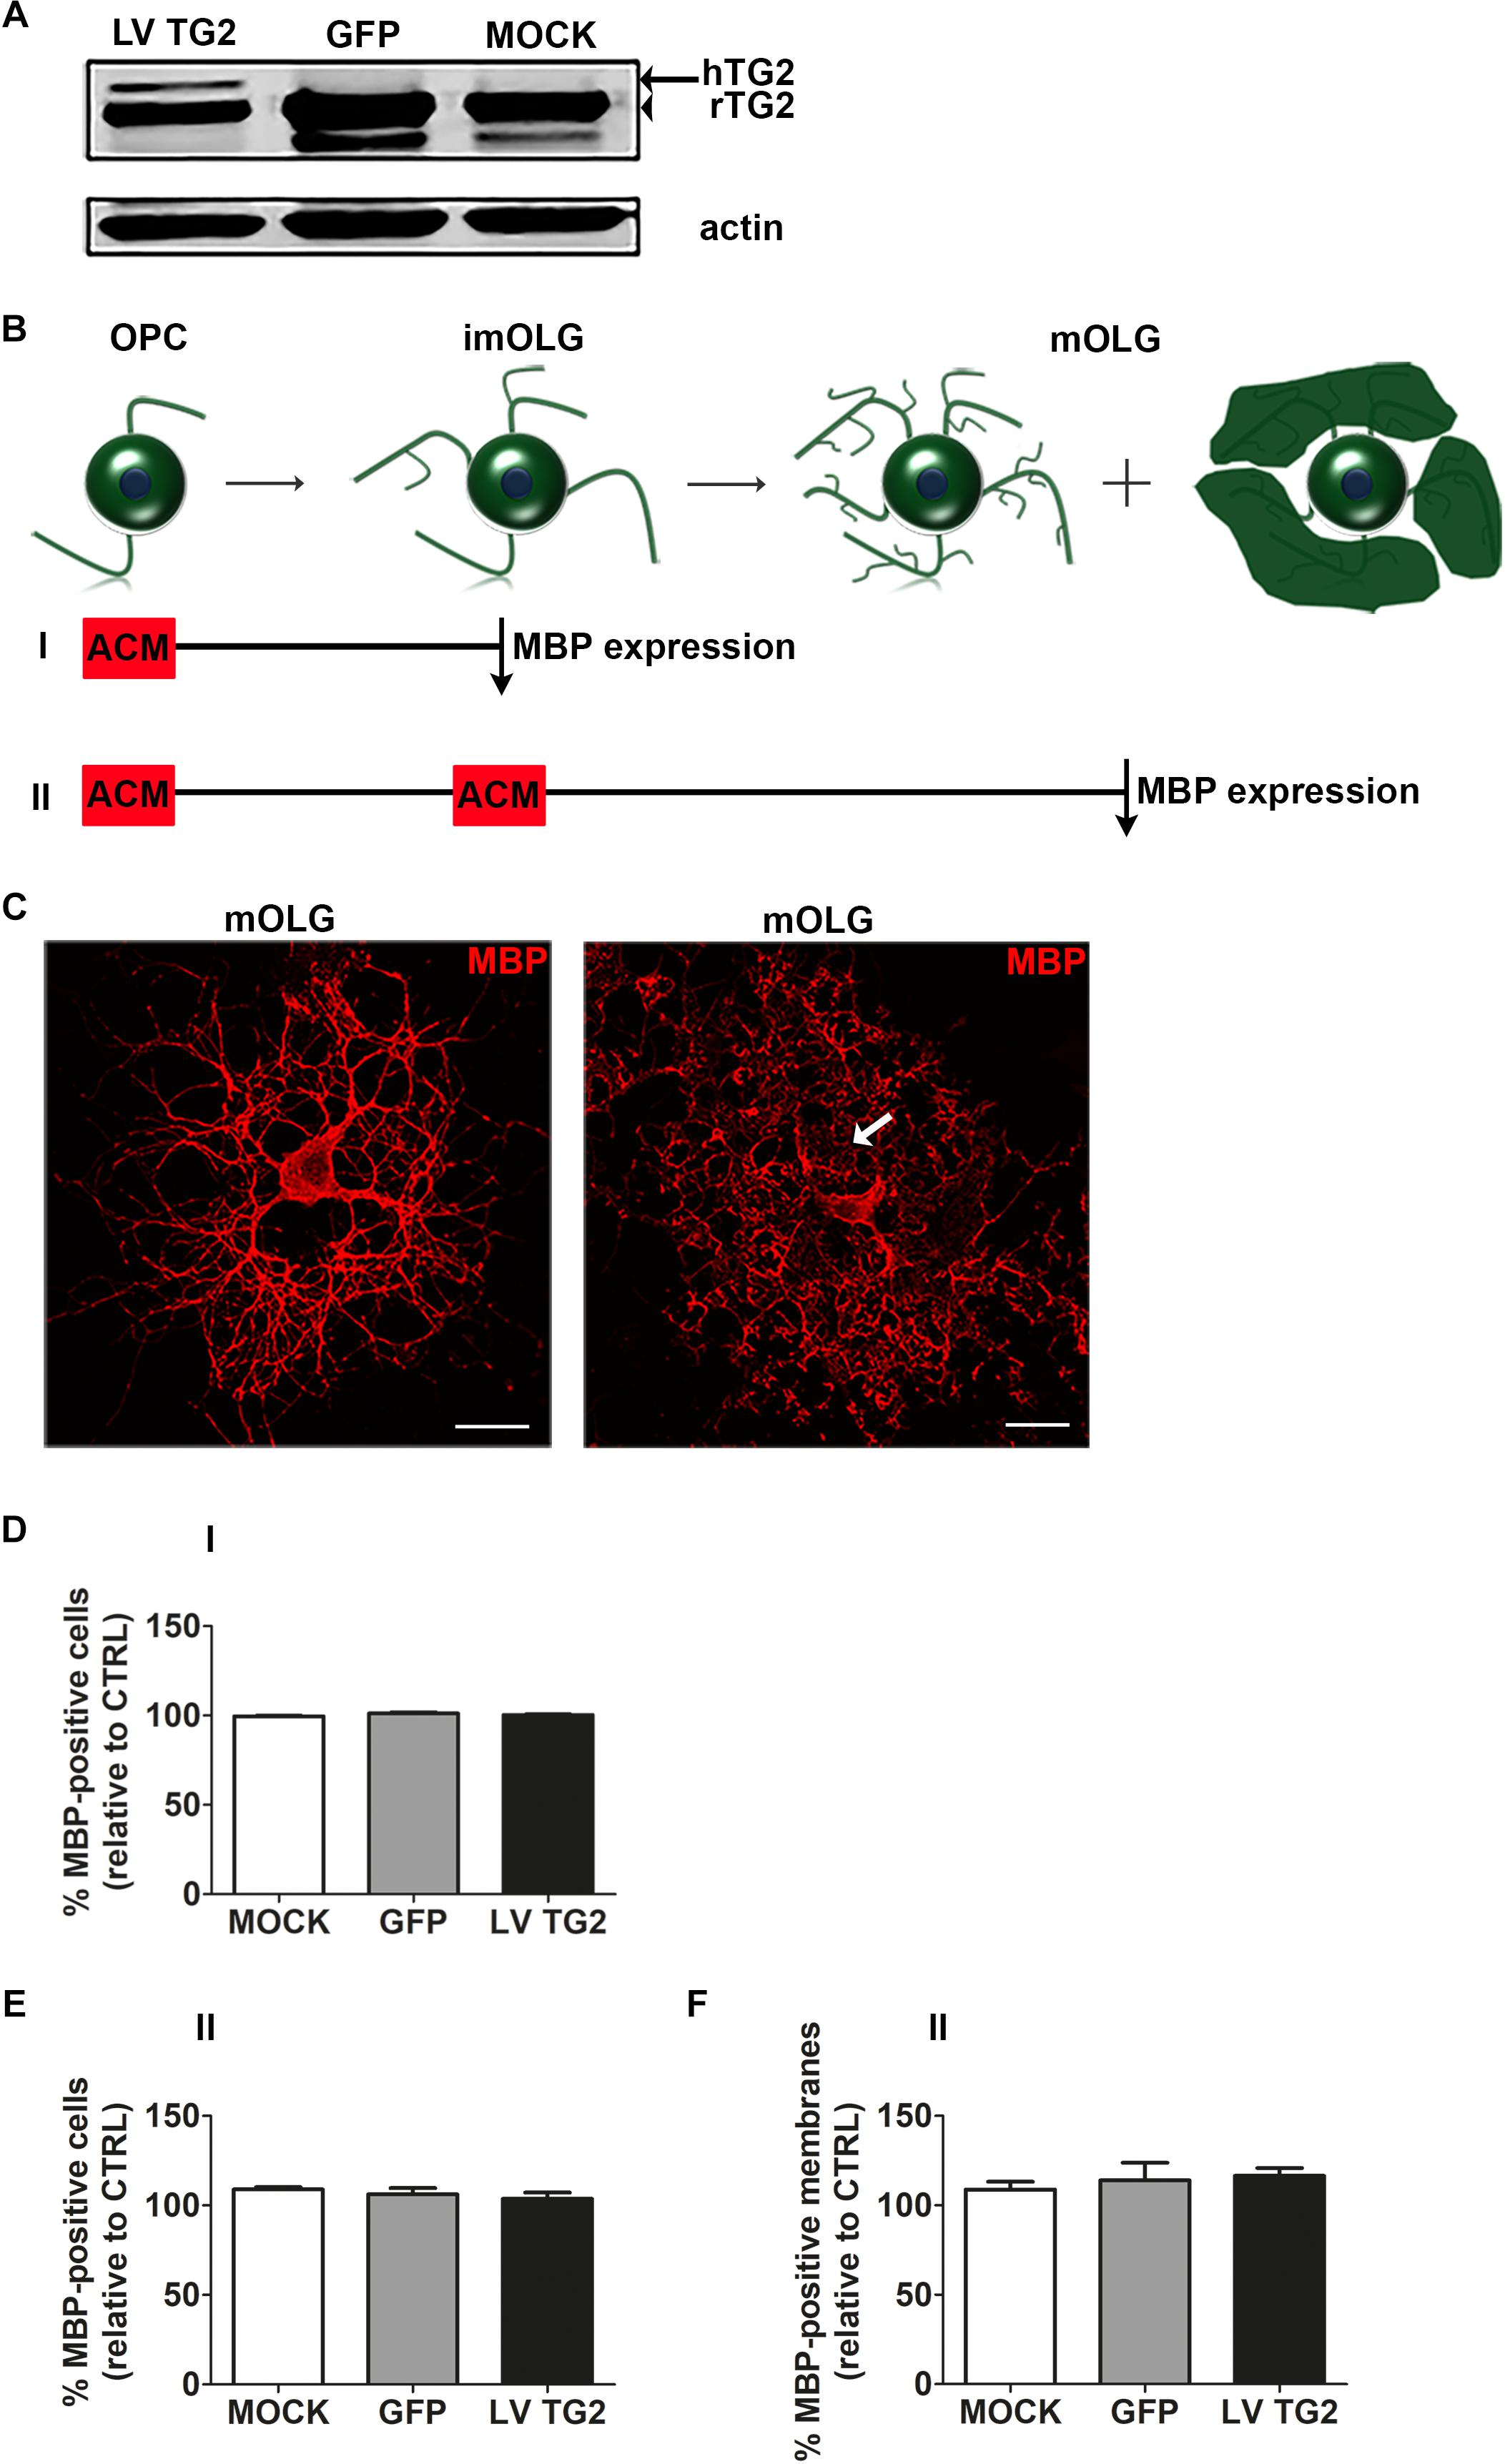 Frontiers | Tissue Transglutaminase Promotes Early ... on